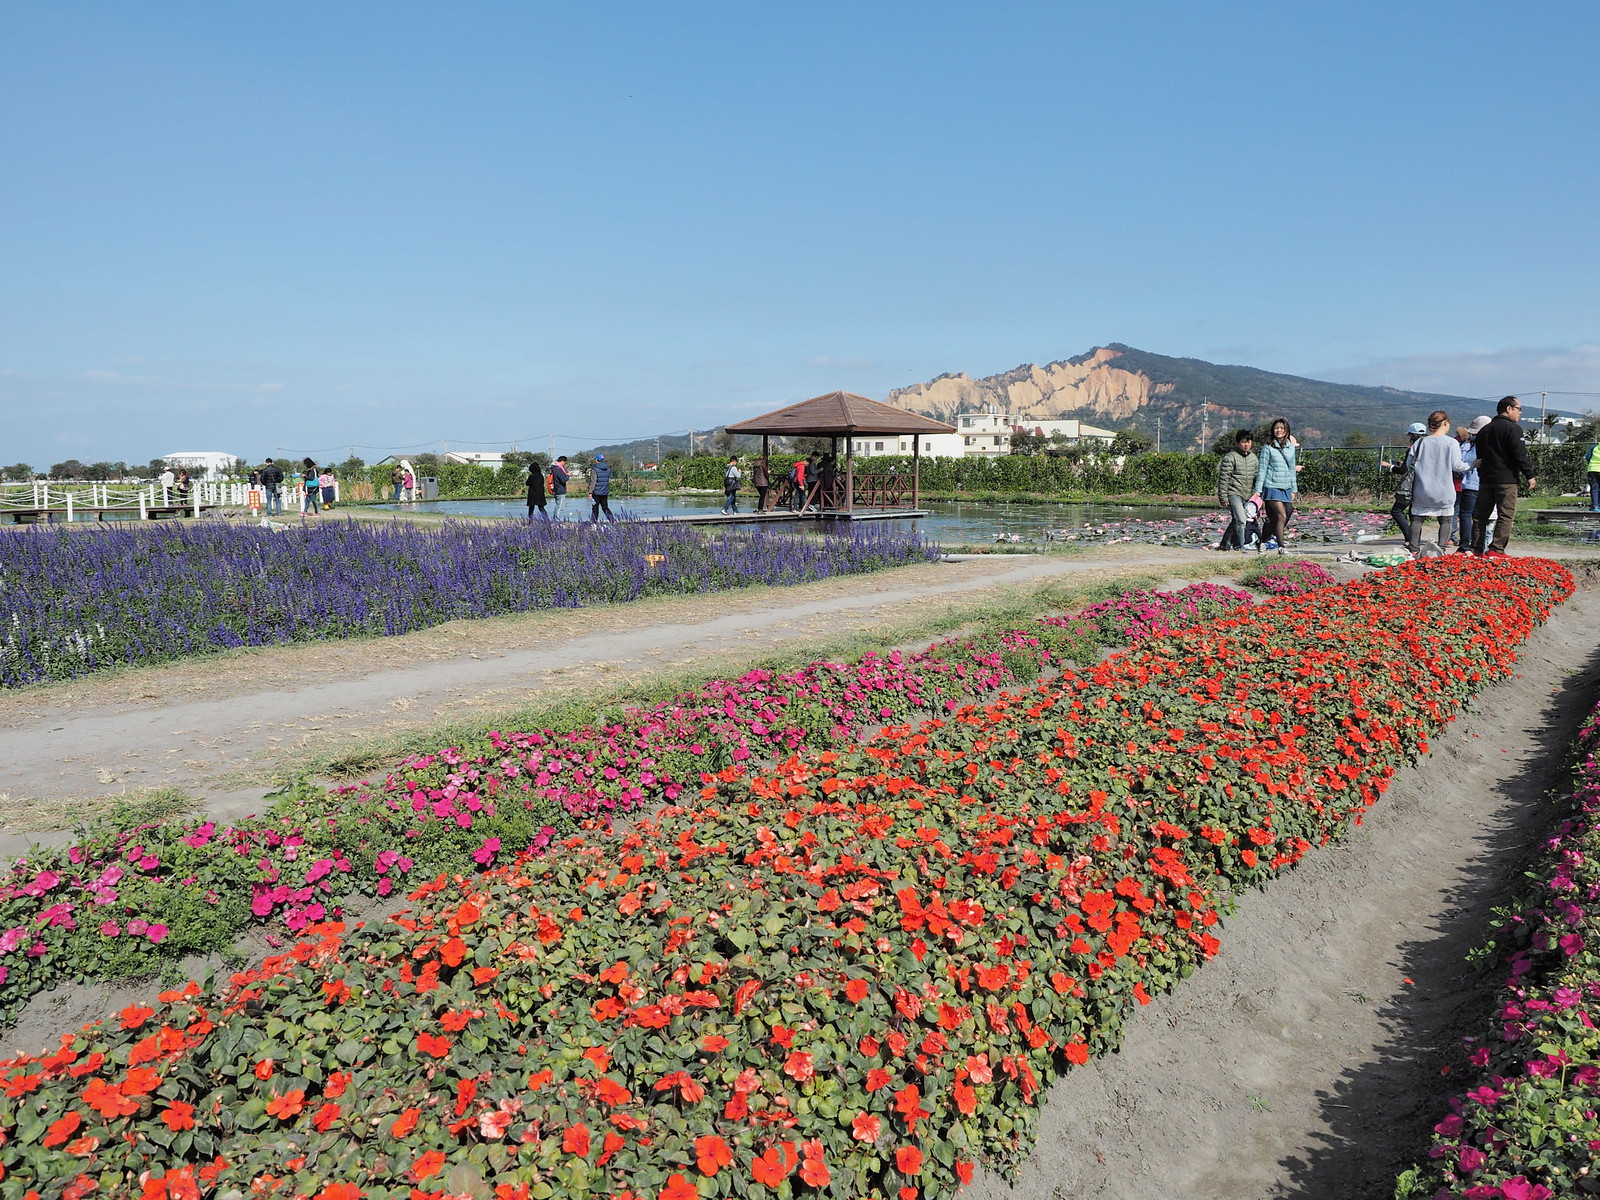 Beds of flowers with Huoyan Mountain 火焰山 in the background.